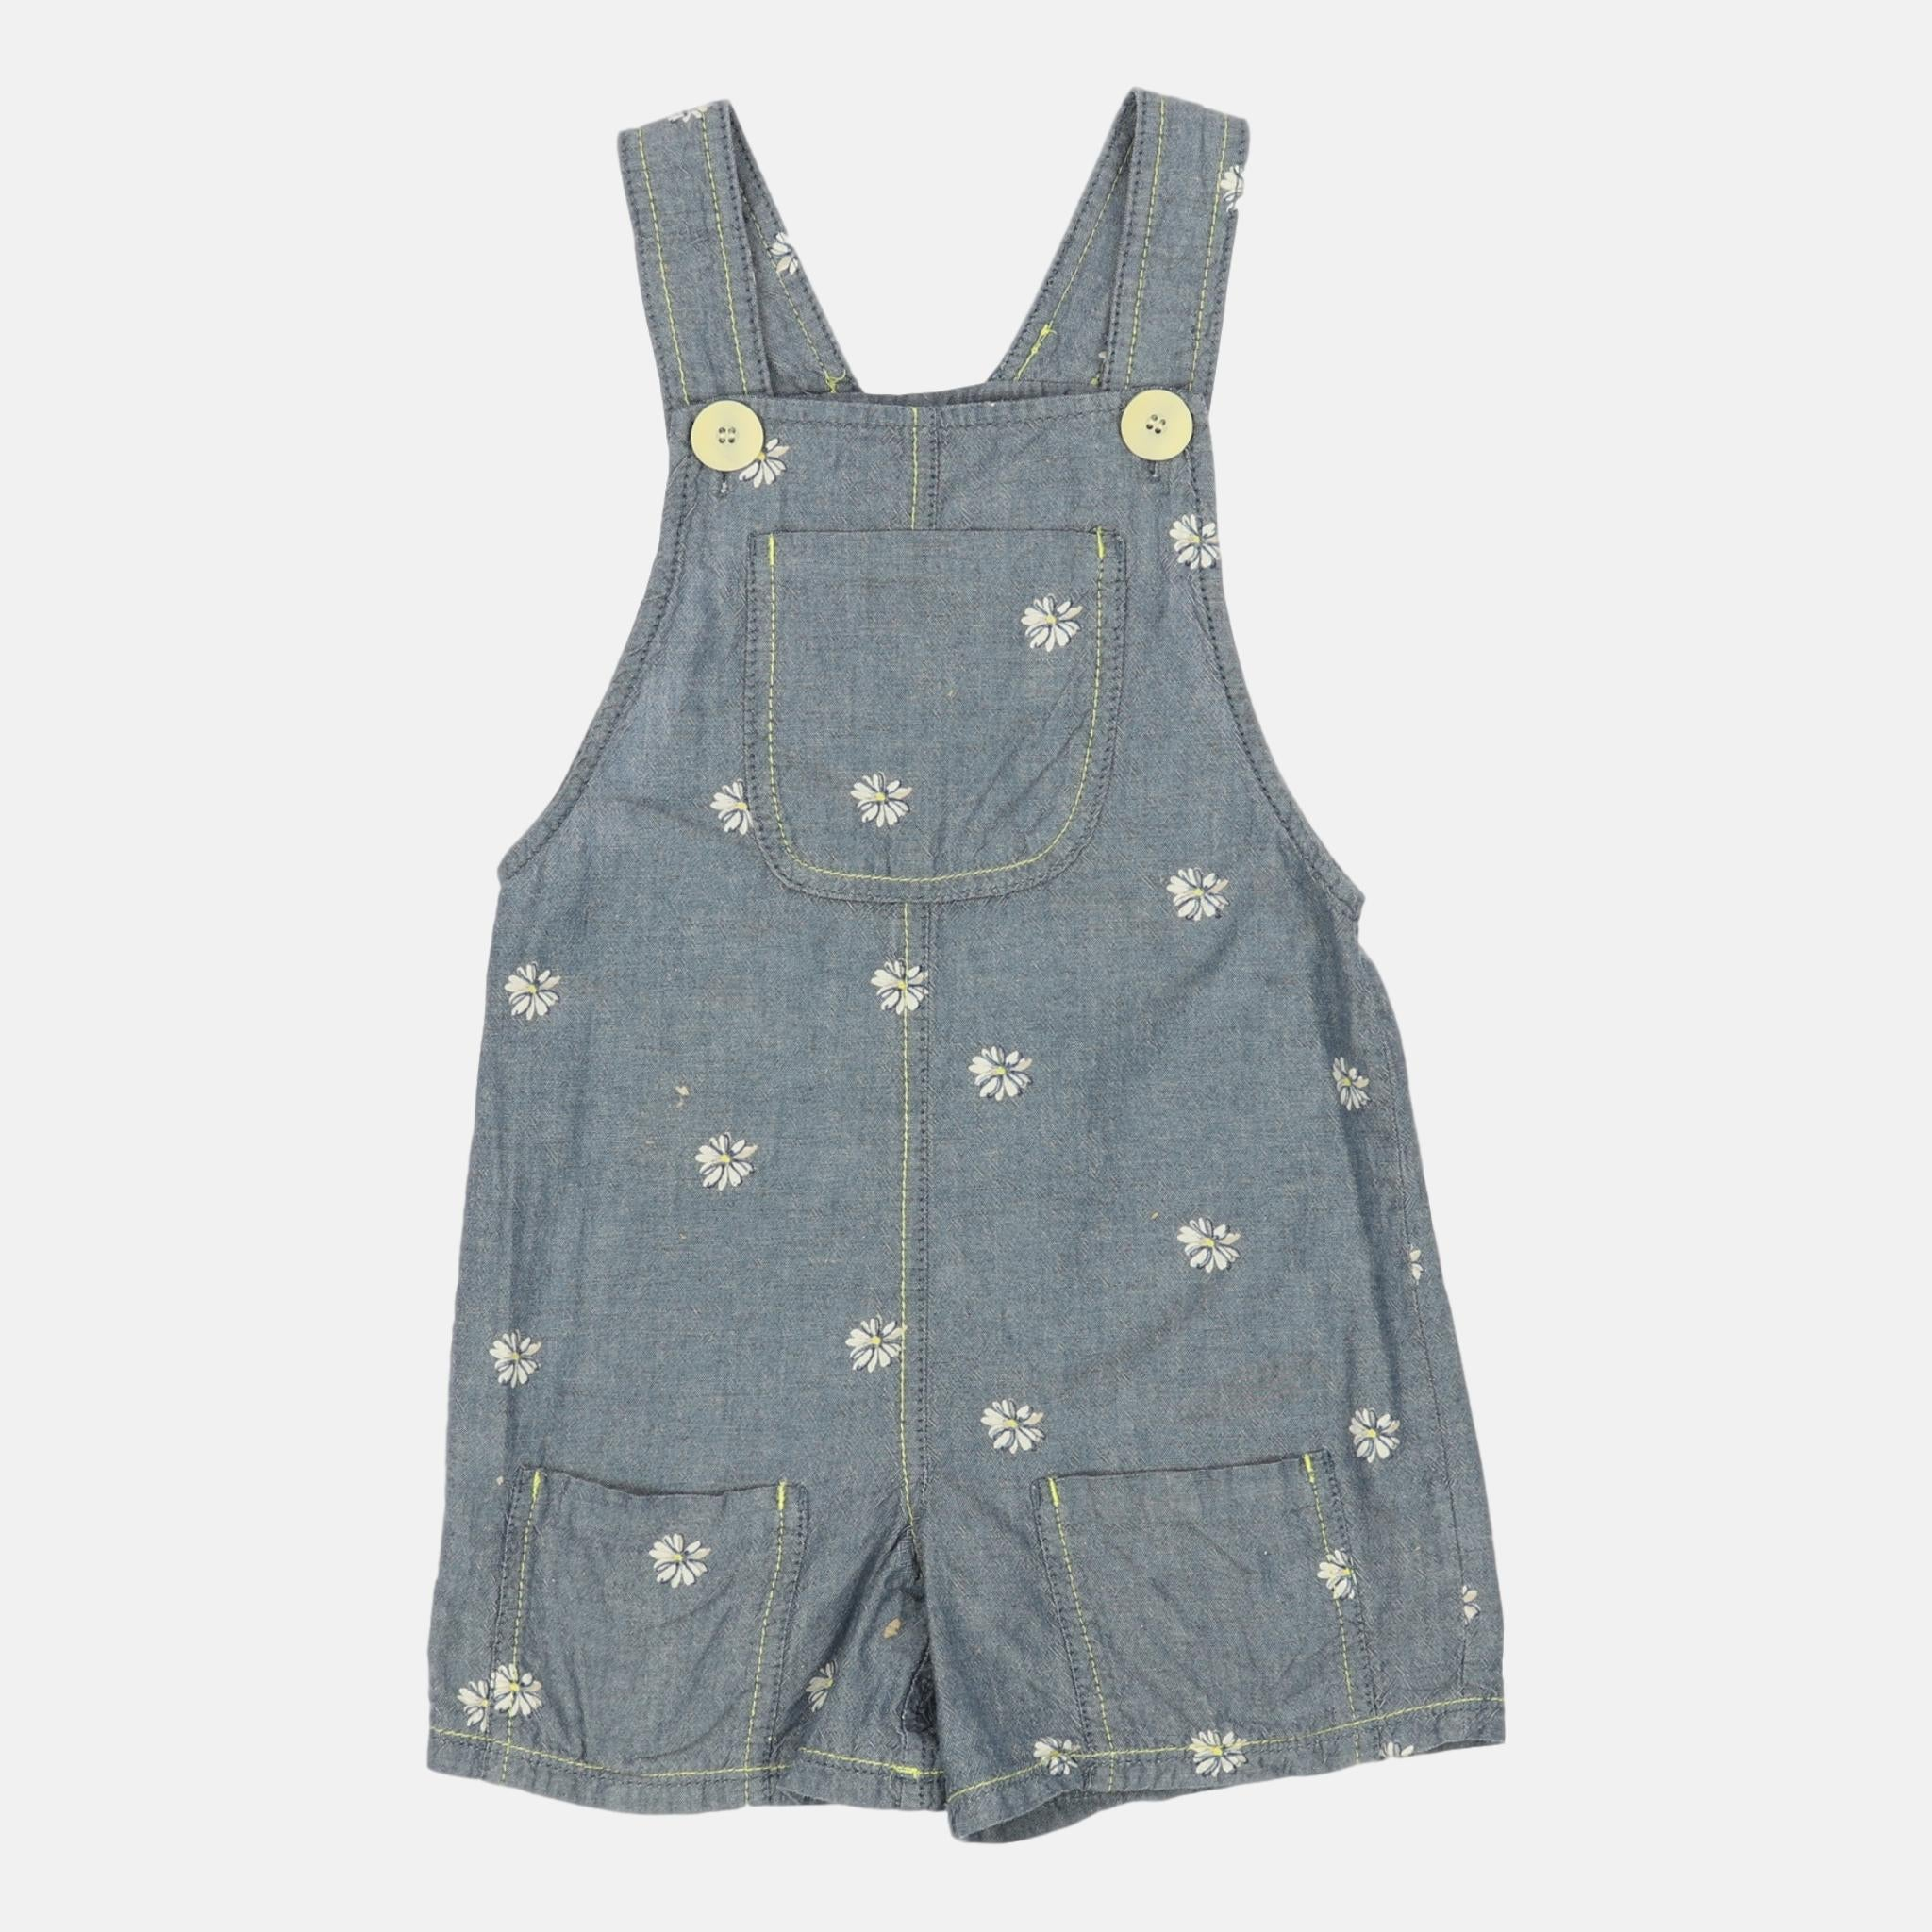 Dungarees, 4-5 Years